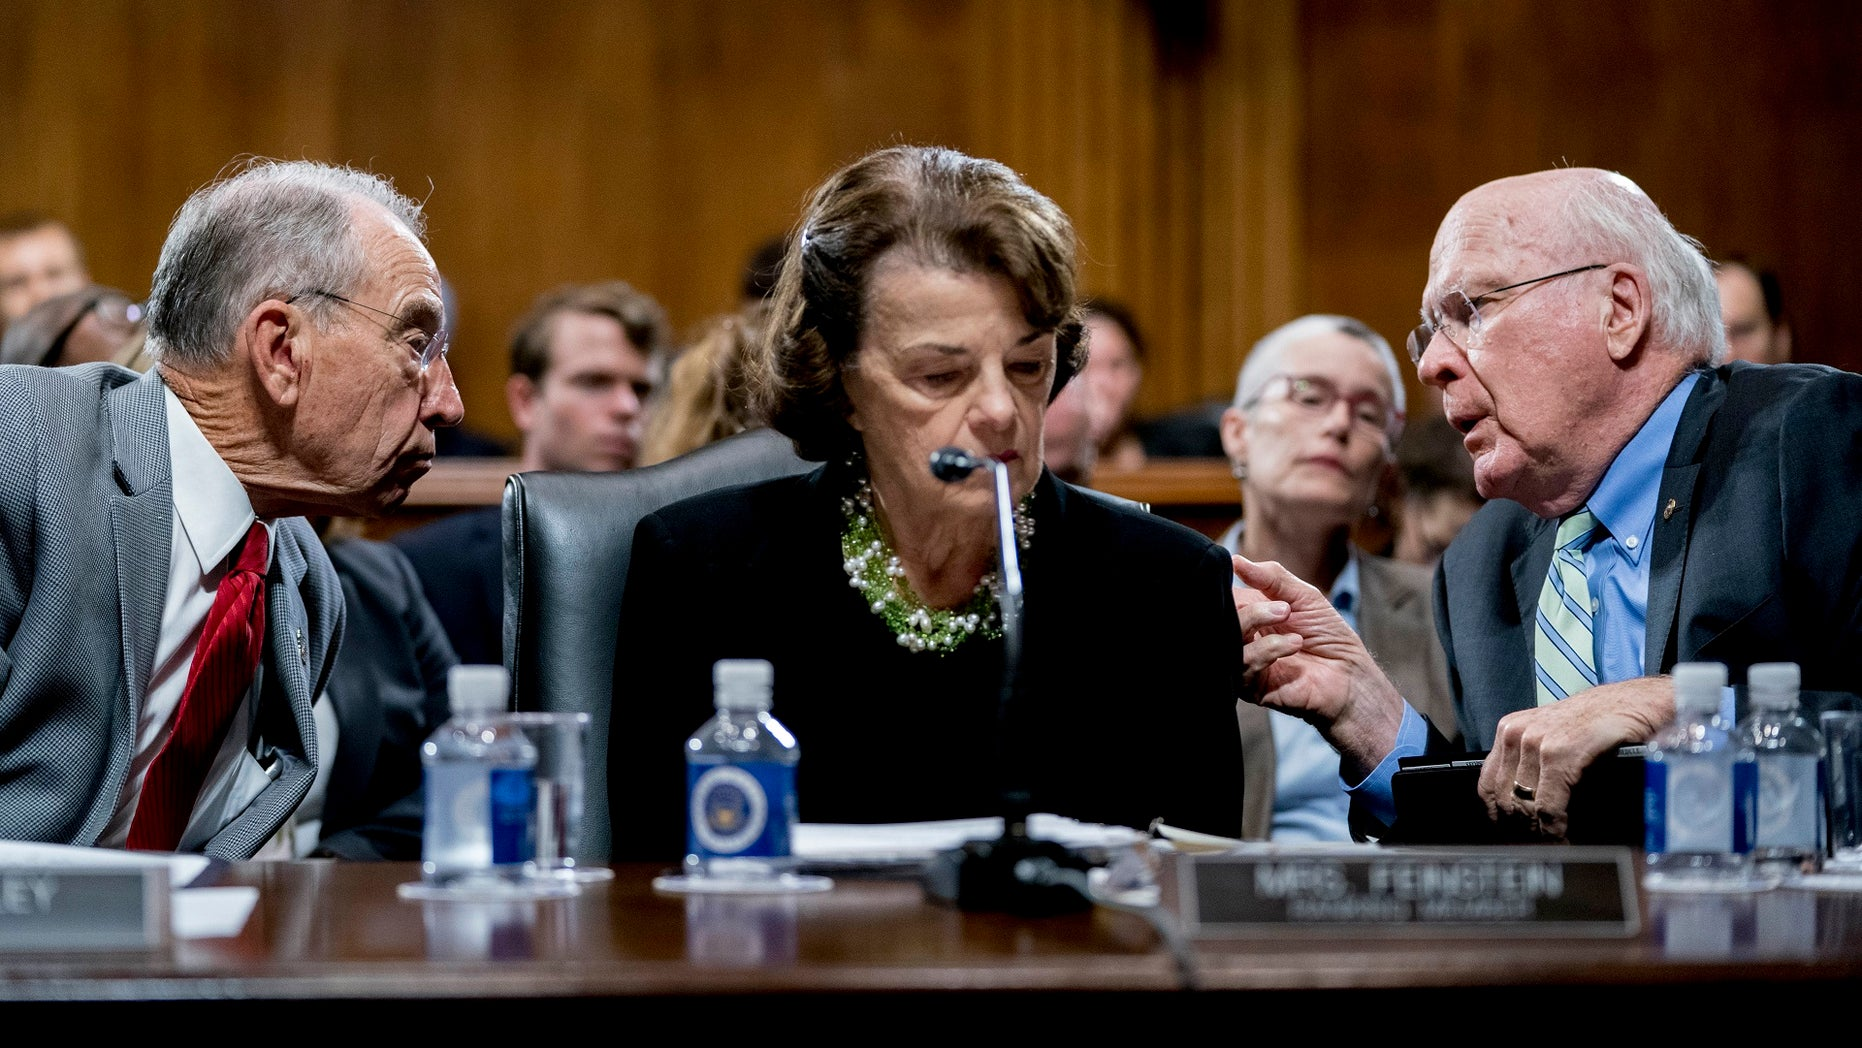 Senate Judiciary Committee Chairman Chuck Grassley (left) confers with other committee members, Sens. Patrick Leahy and Dianne Feinstein, the ranking member.